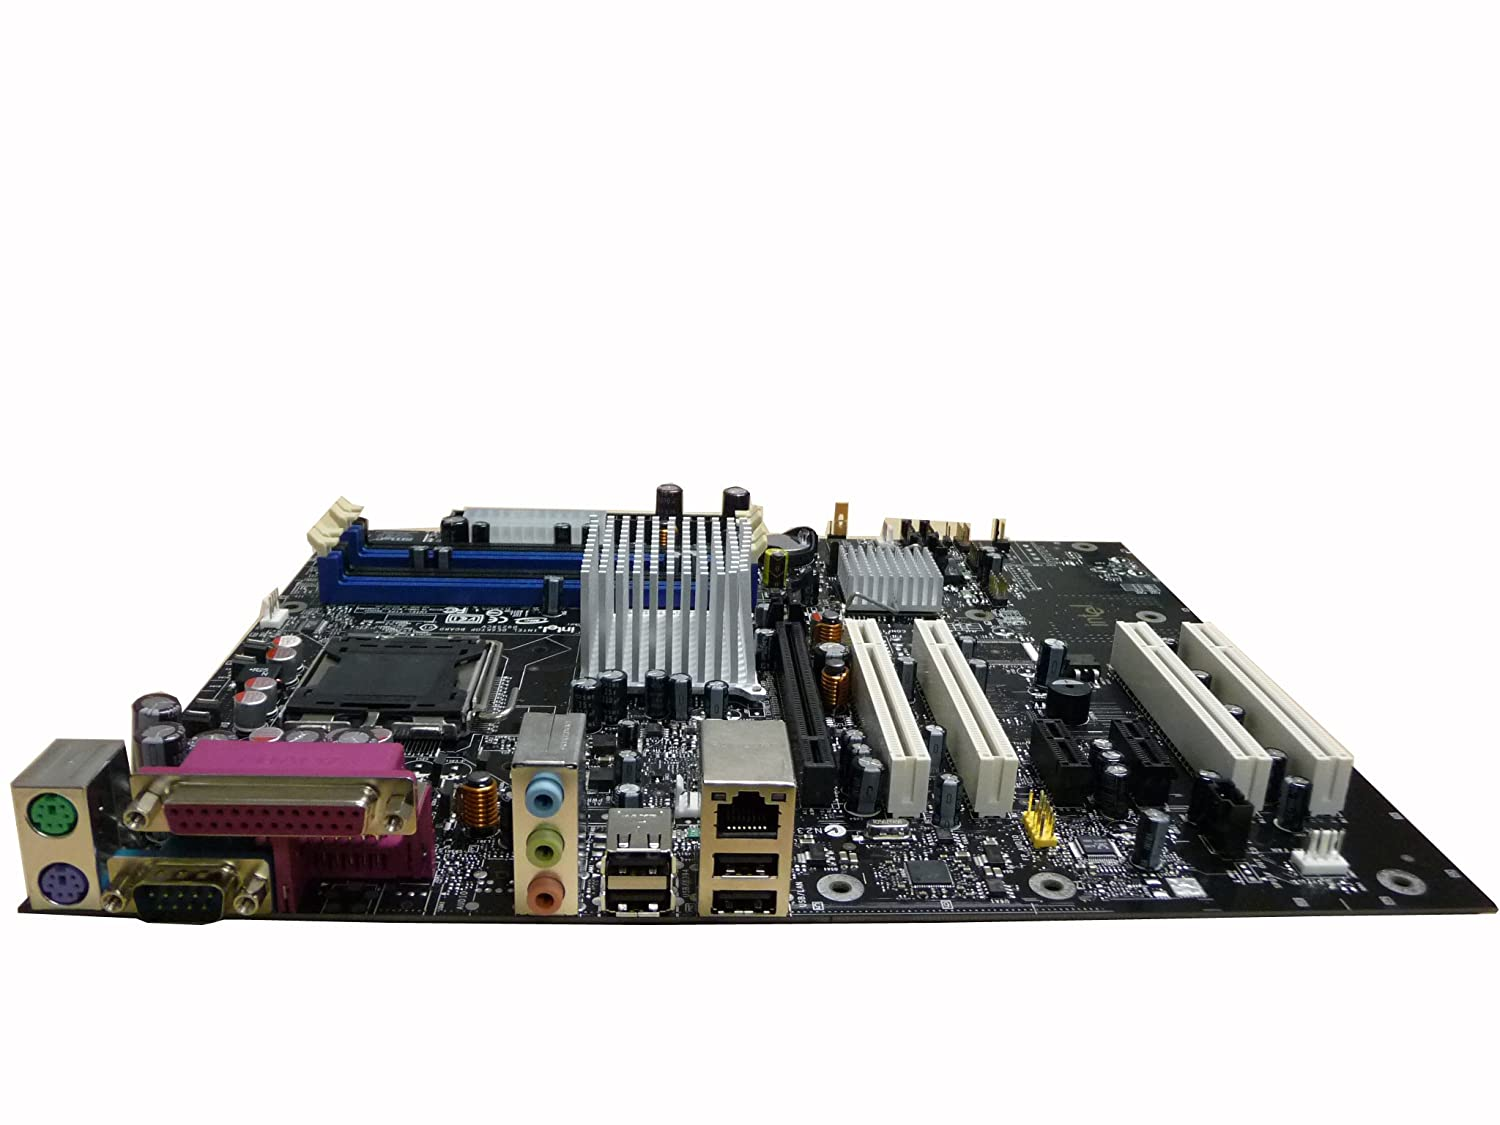 Intel D925xcv Socket 775 Atx Desktop Motherboard Xtreme G41 Ddr3 Lga Computers Accessories